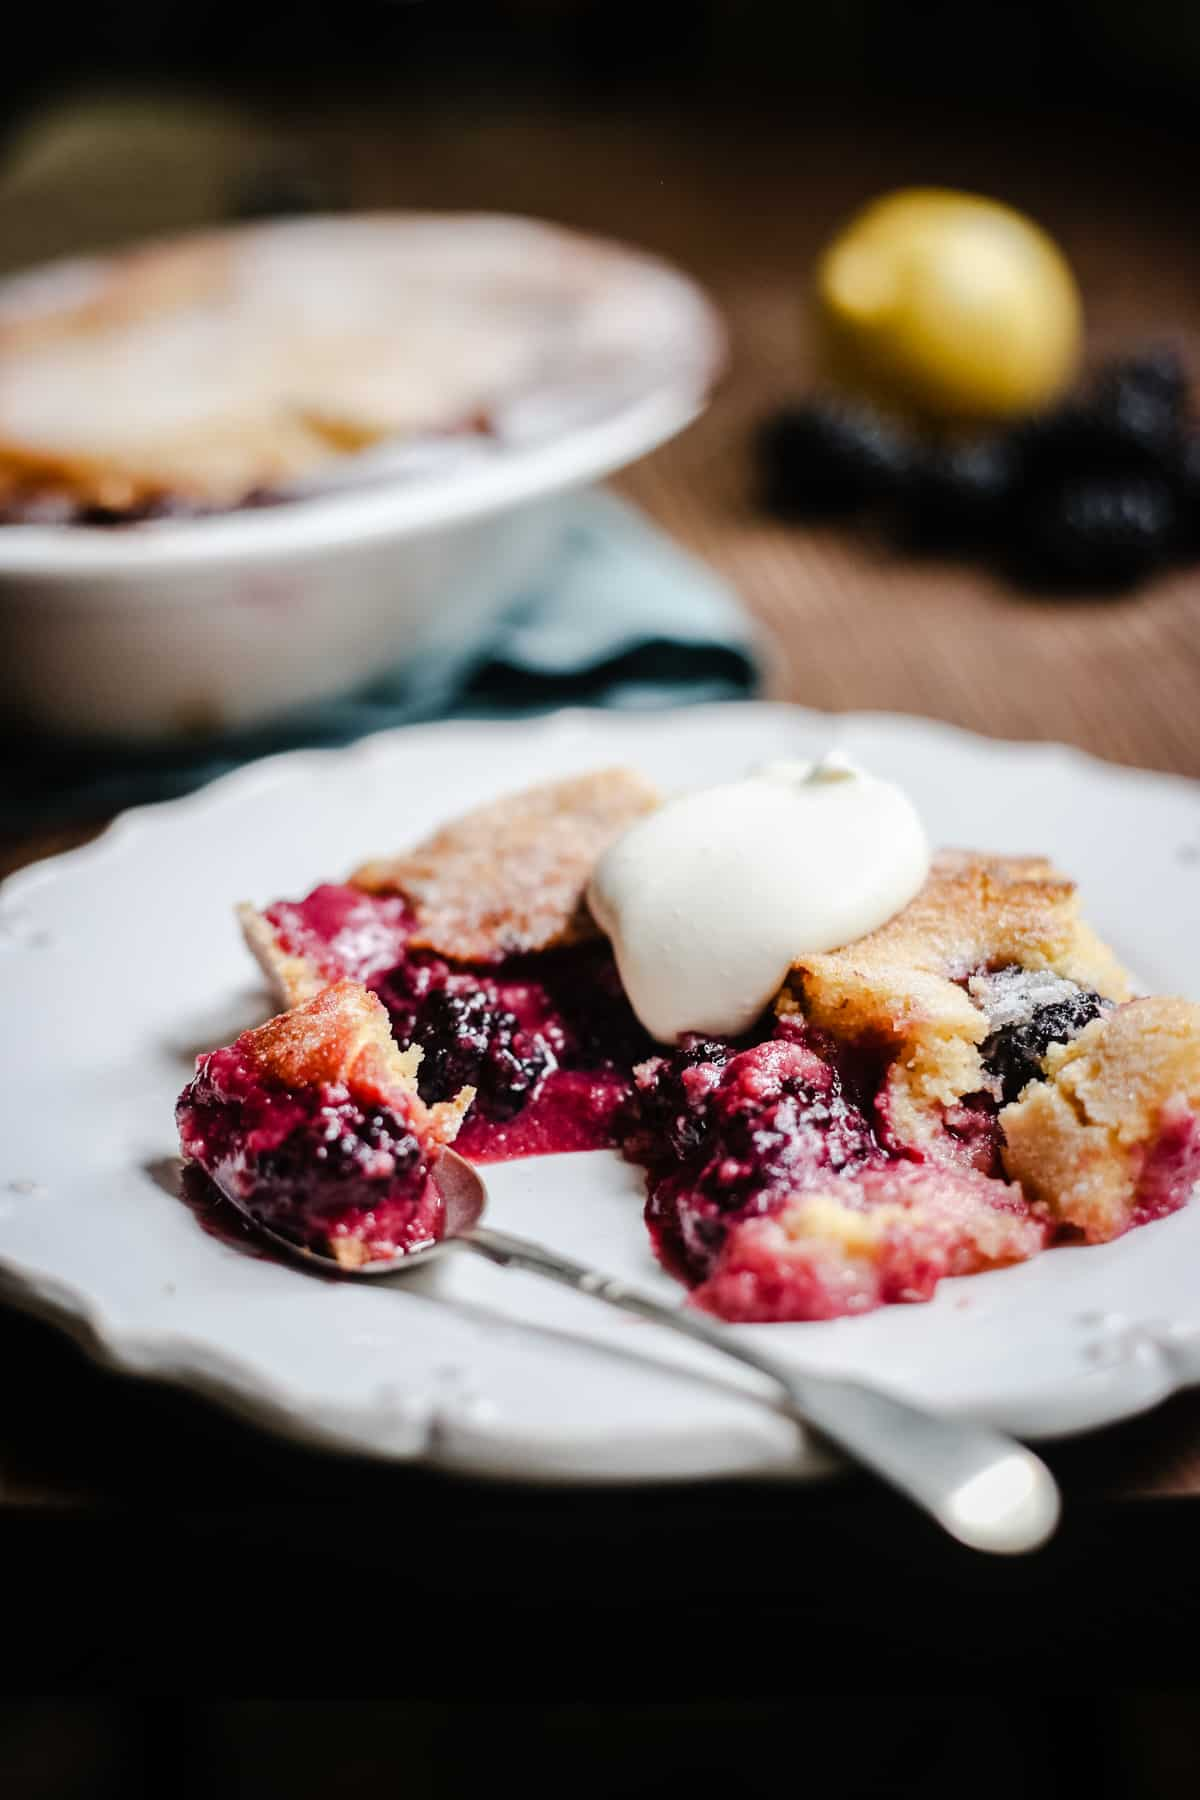 Blackberry Lemon Pudding on a plate